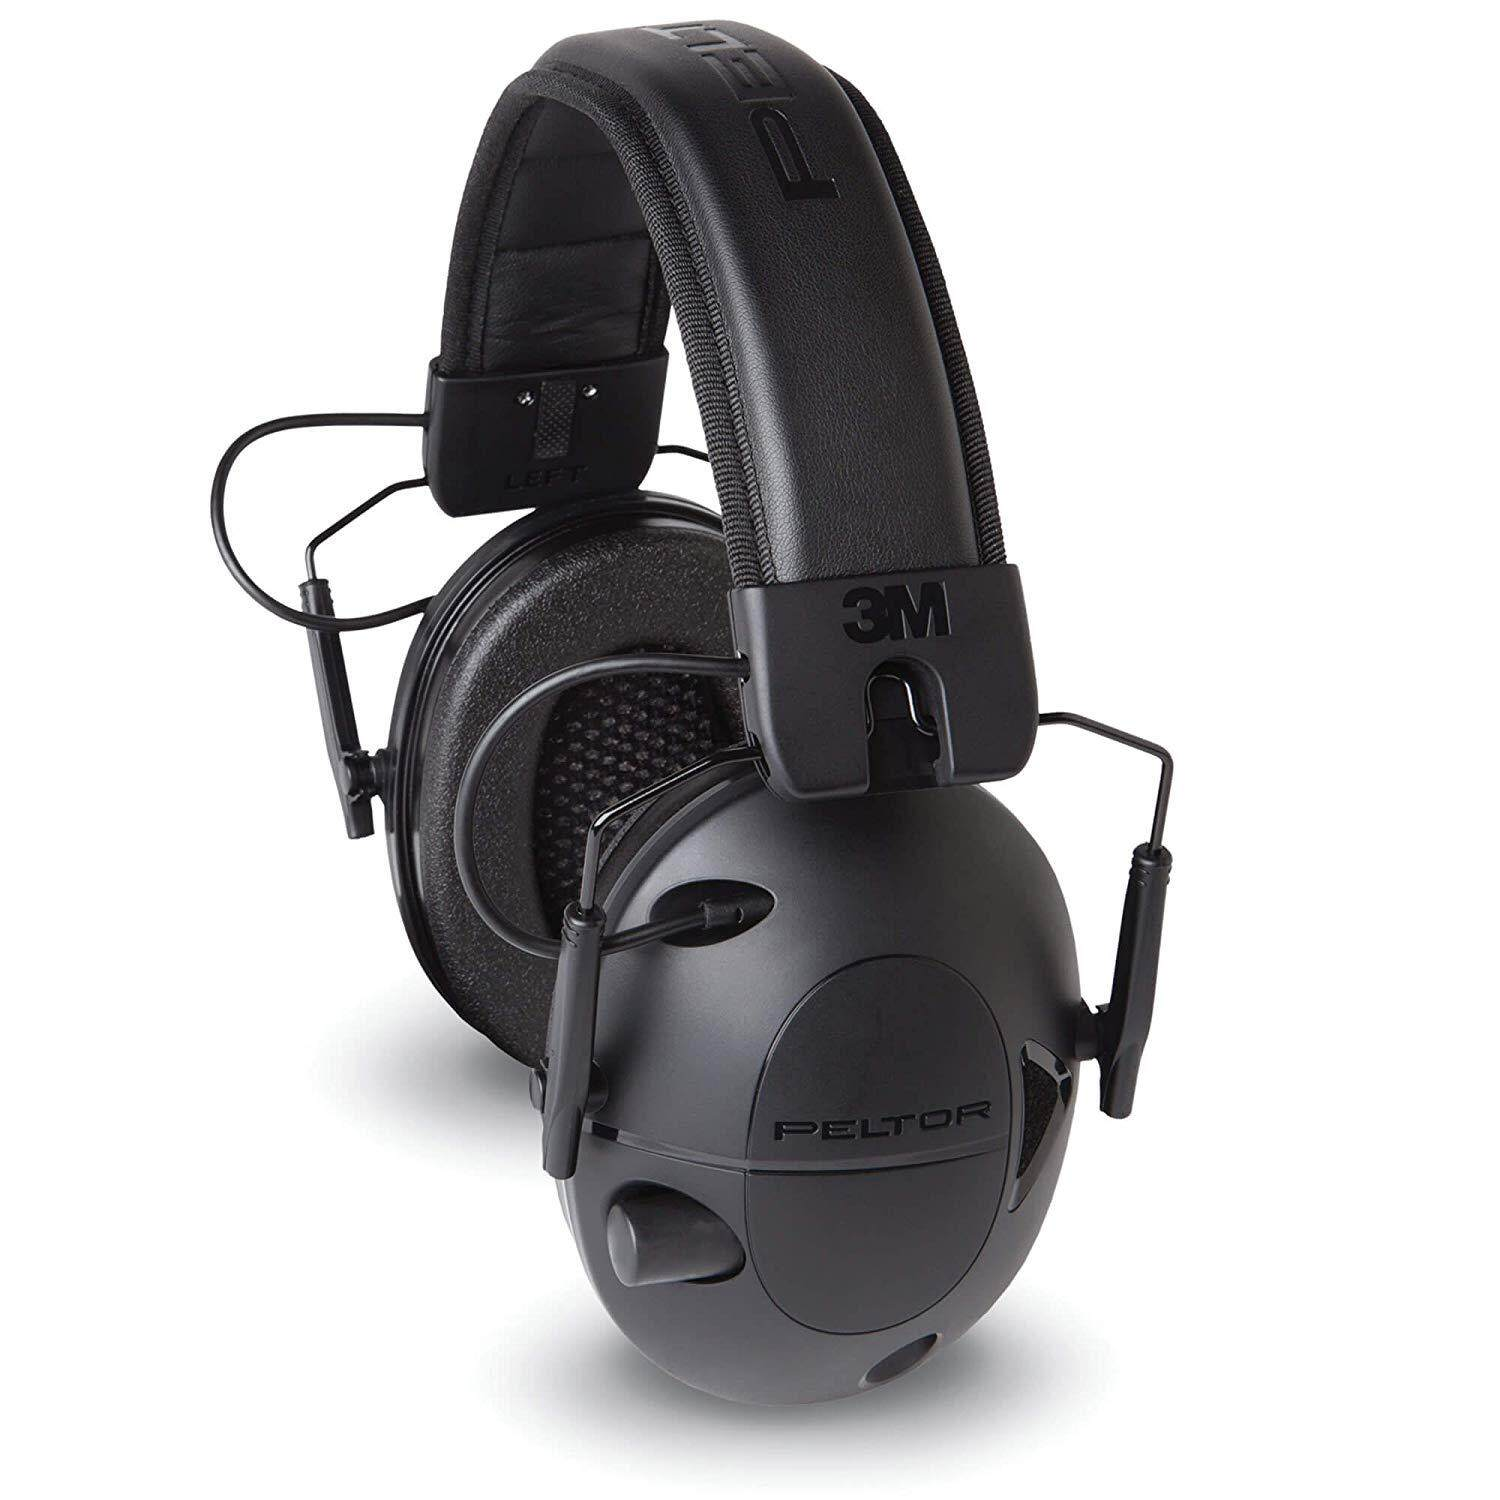 3M Peltor Sport Tactical 100 Electronic Hearing Protector, Ear Protection, NRR 22 dB, Ideal for Shooting and Hunting (TAC100)